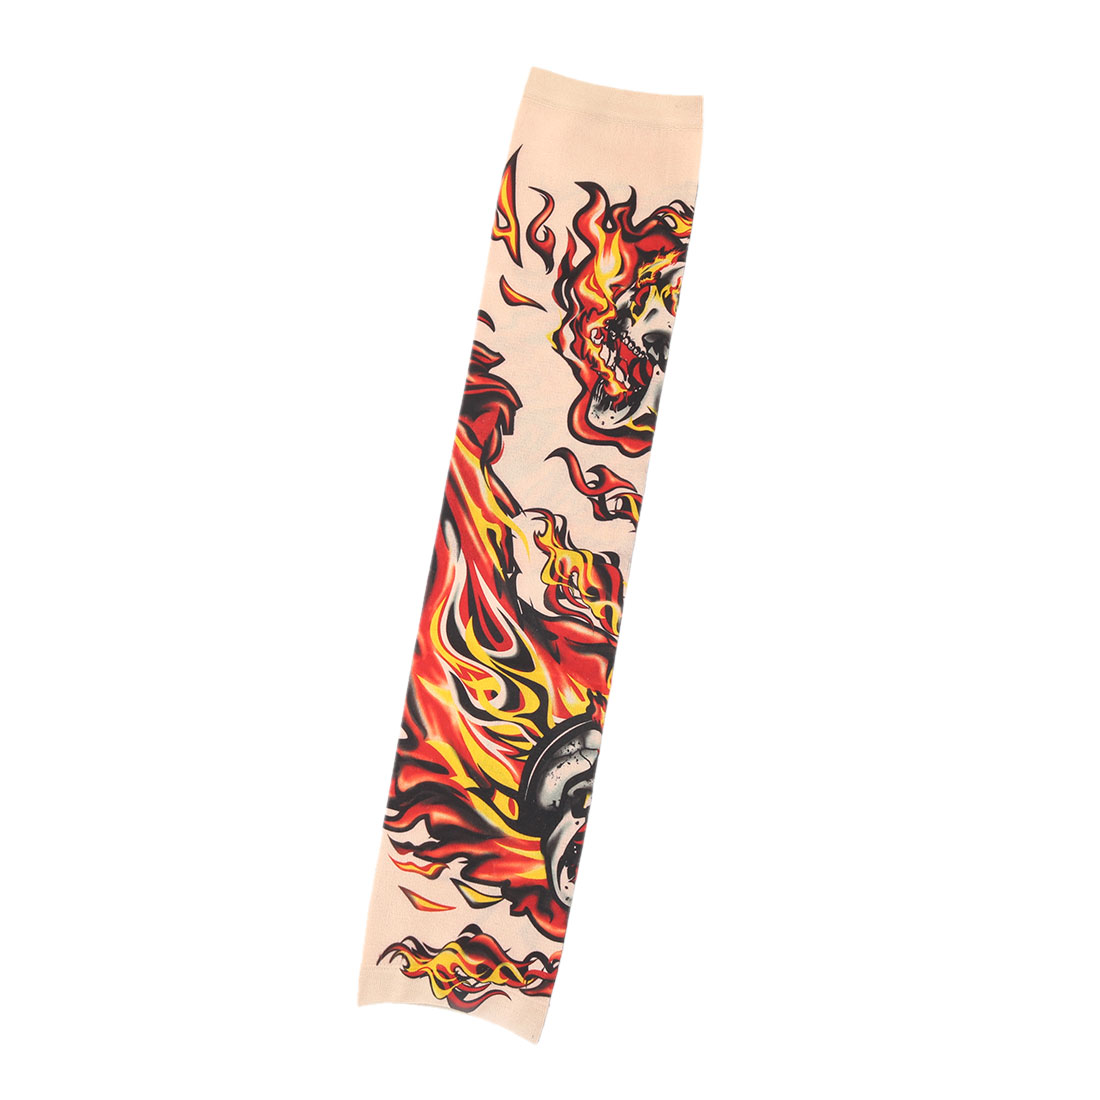 Outdoor Nylon Fire Pattern Running Exercising Climbing Elastic Arm Protector Sleeve